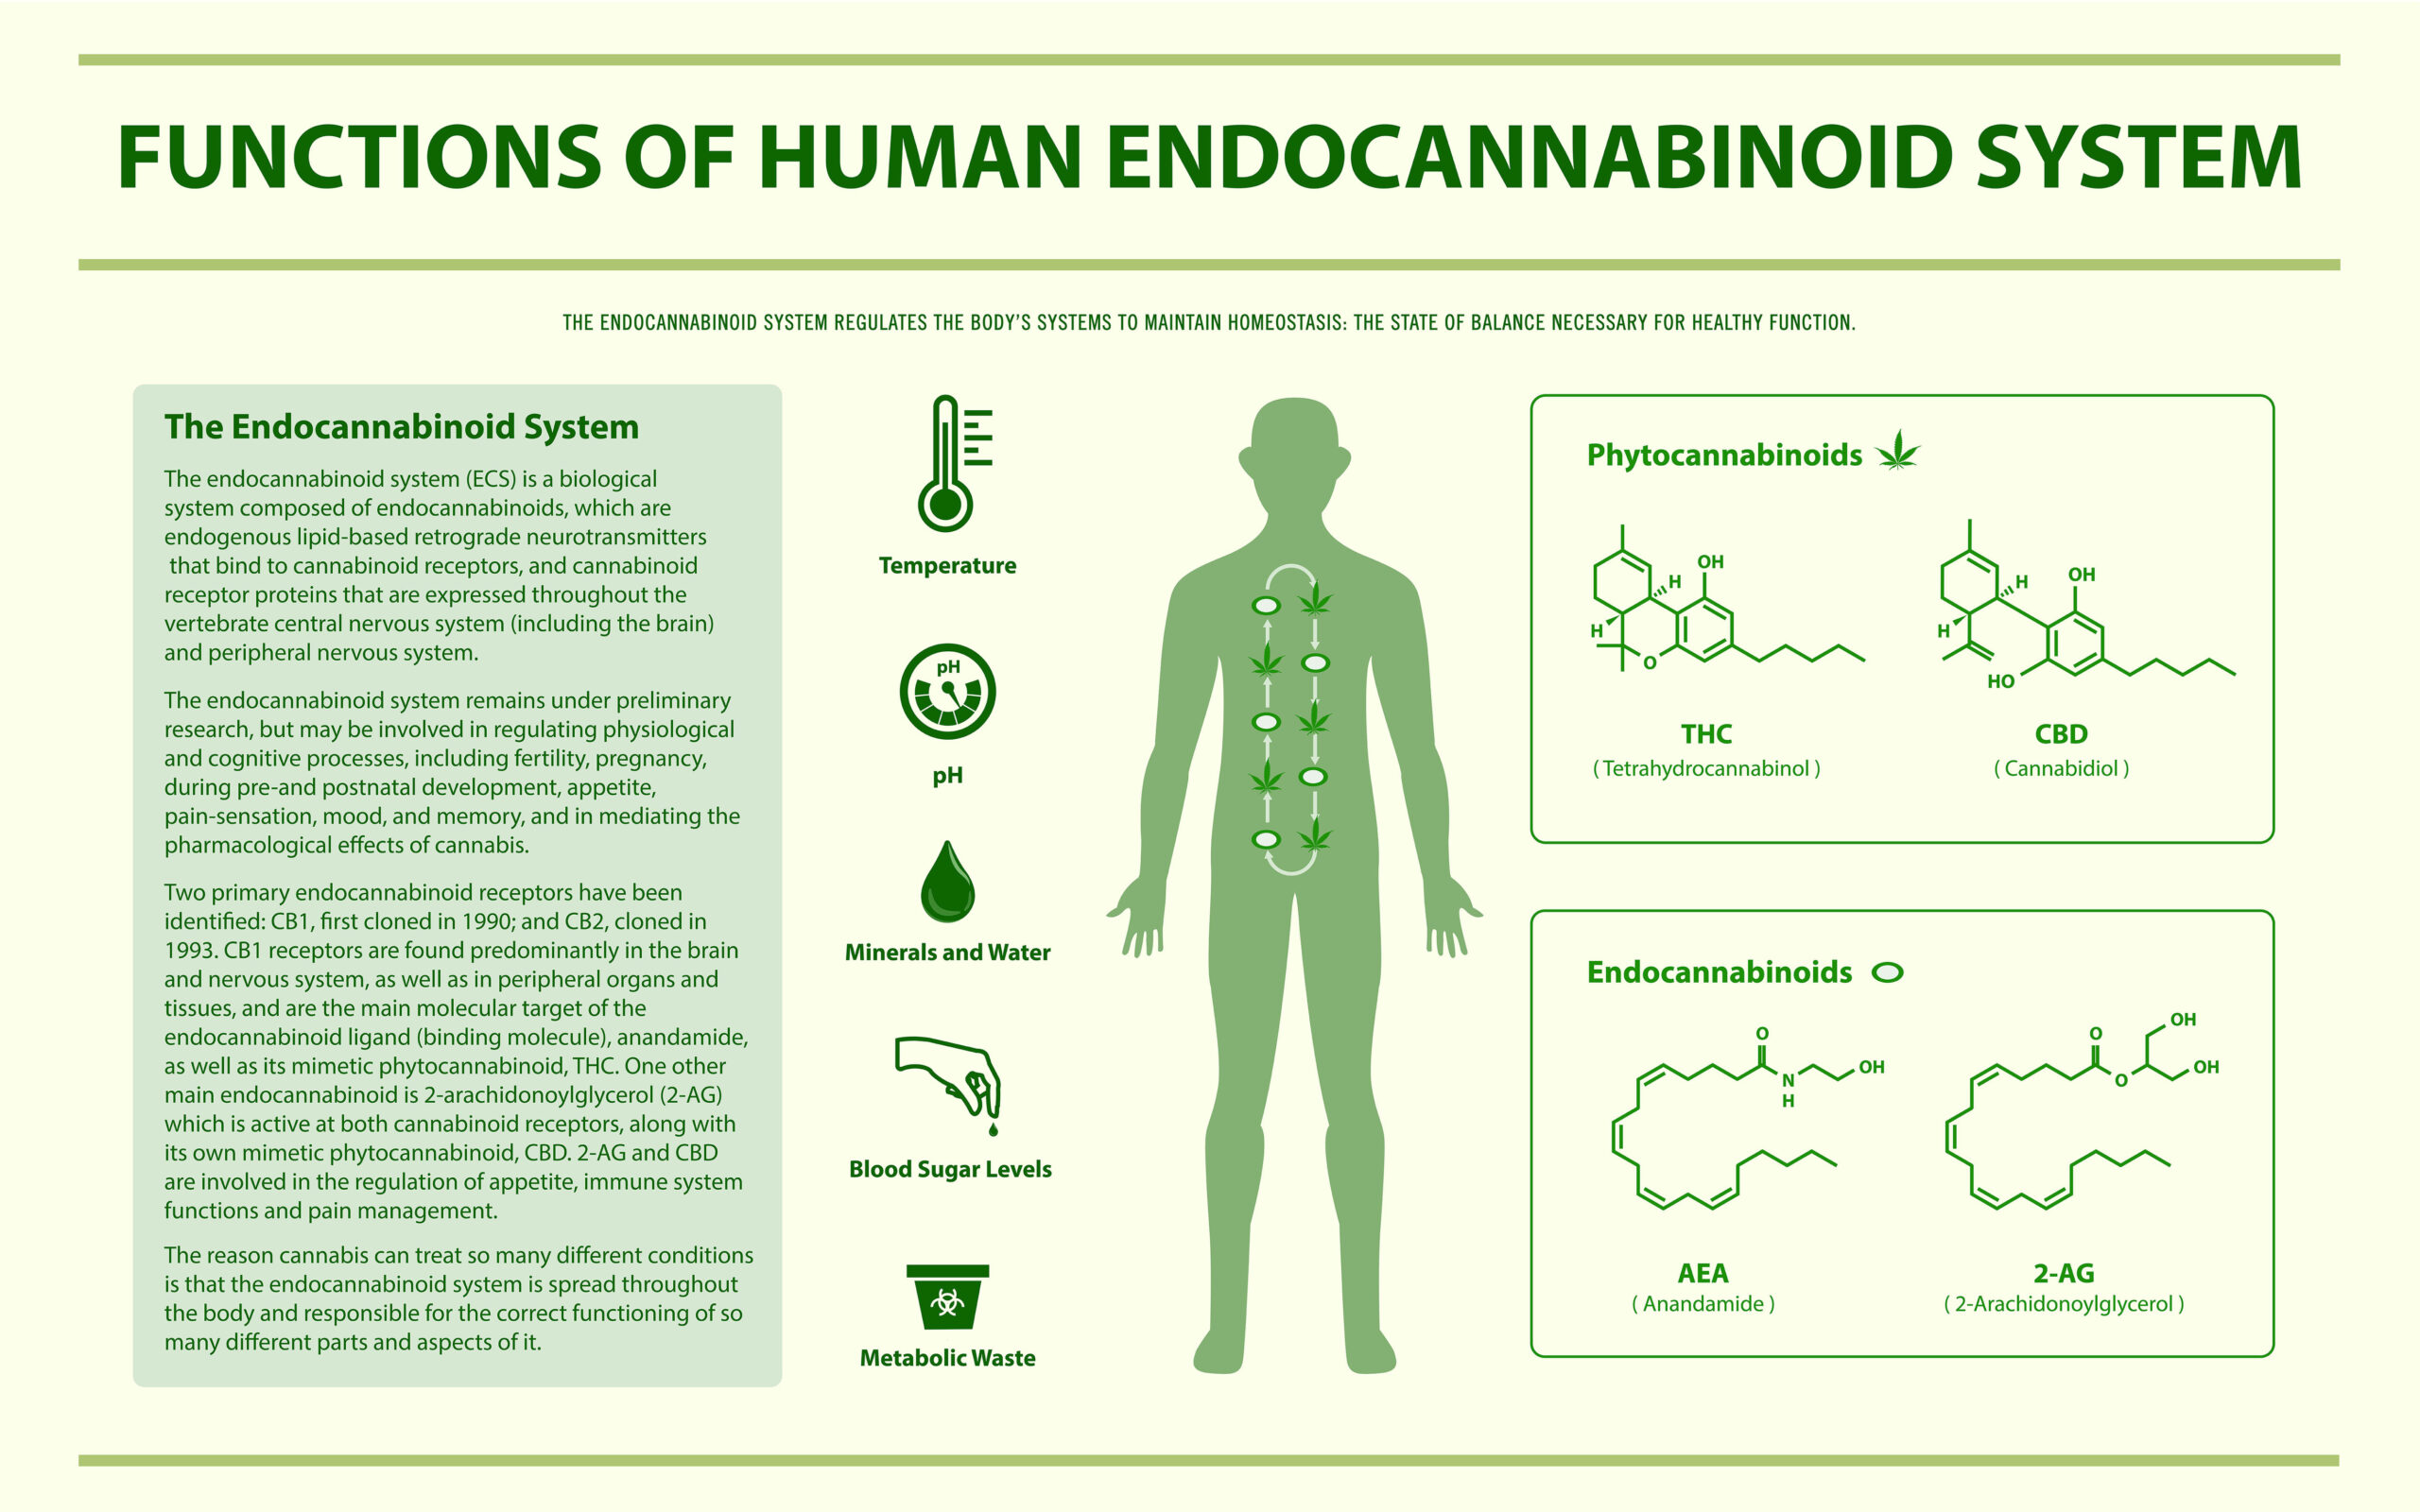 Divine Elements Functions of Human Endocannabinoid System image